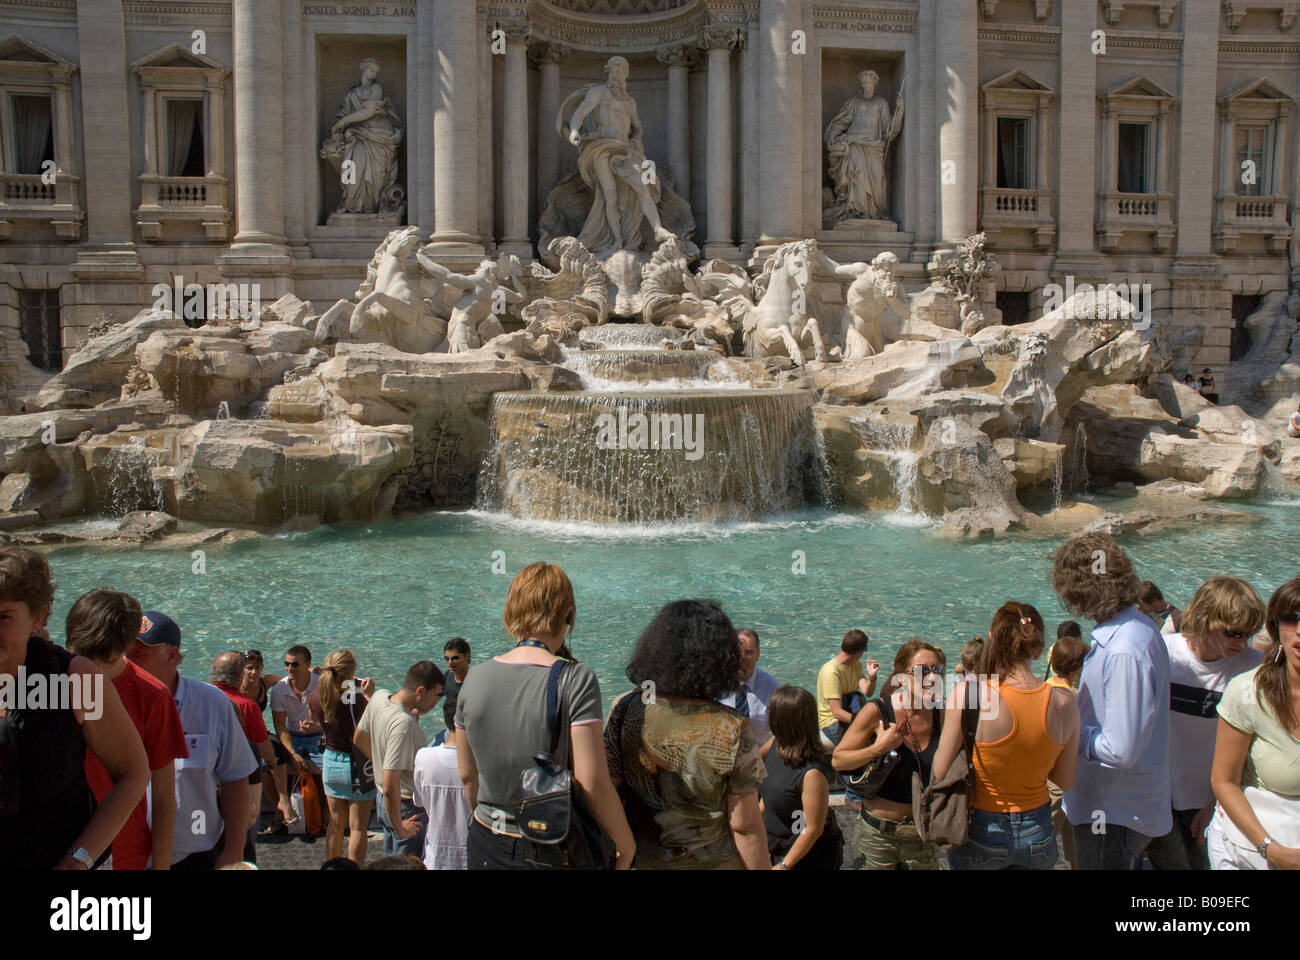 Crowds at the Trevi Fountain in Rome - Stock Image